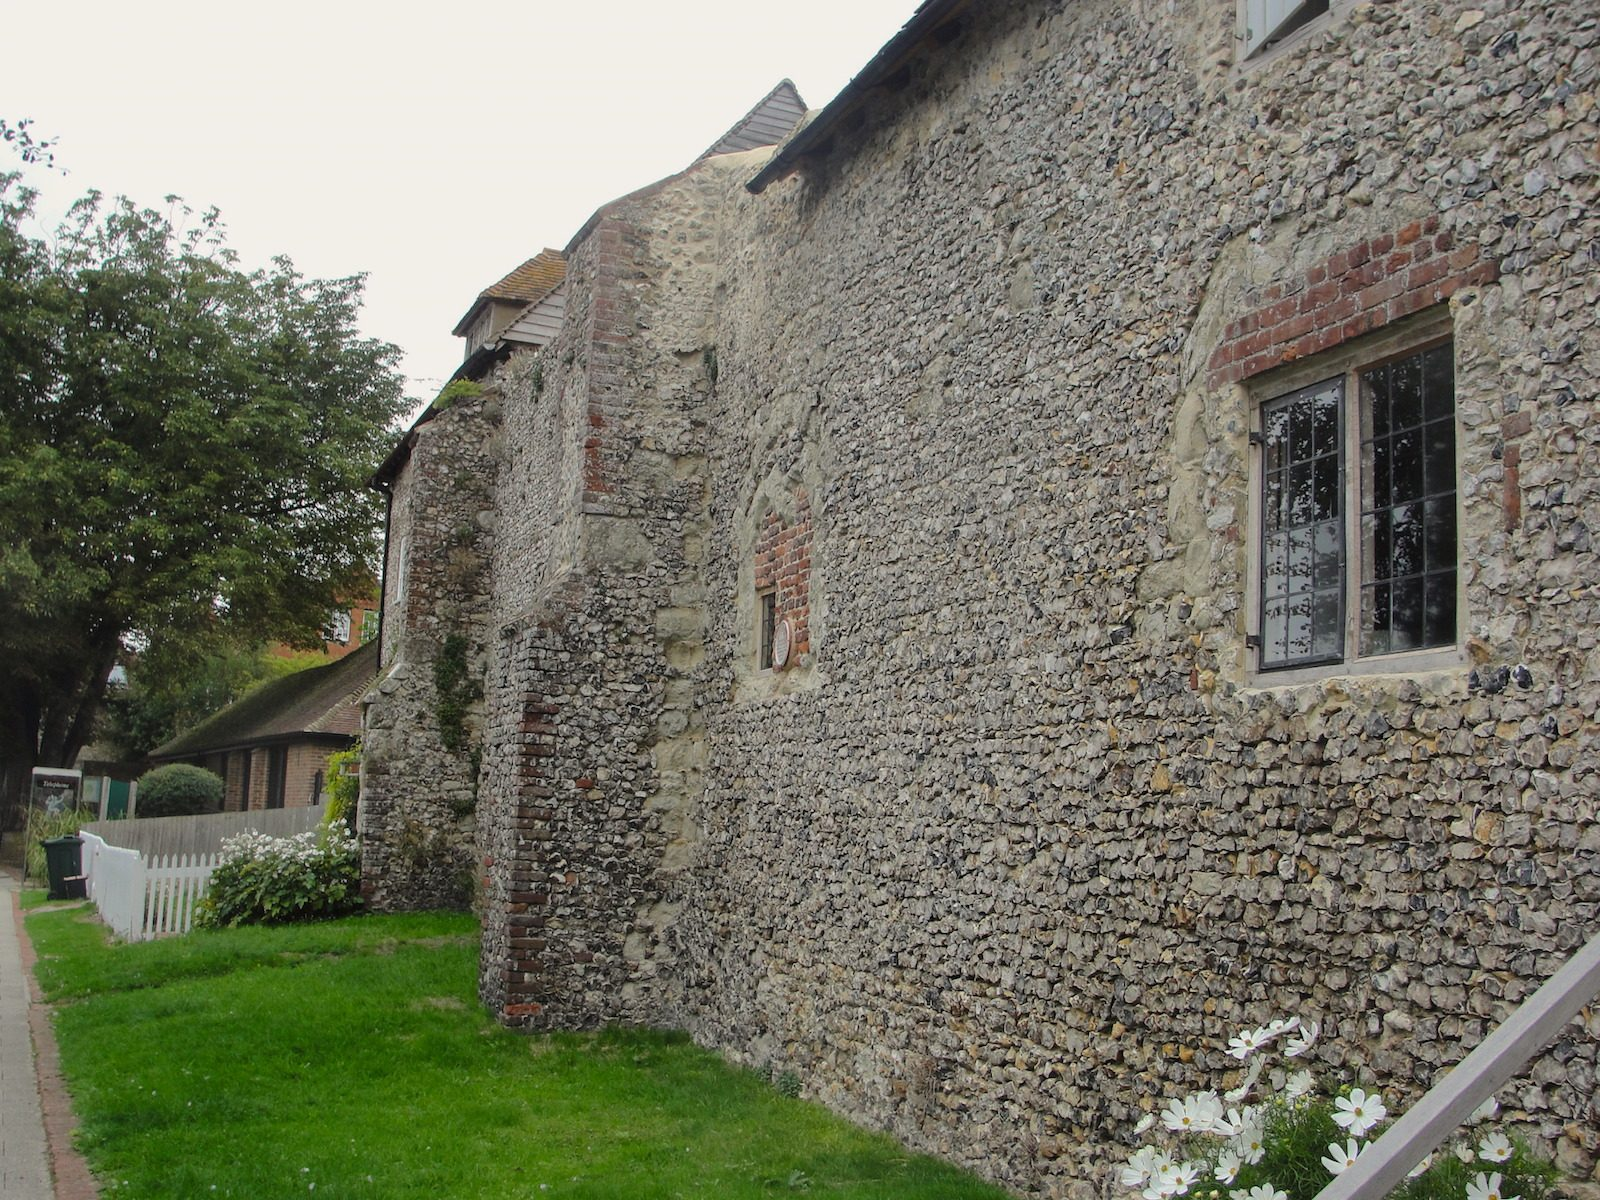 A wall of the Archbishop's Palace in Charing, Kent